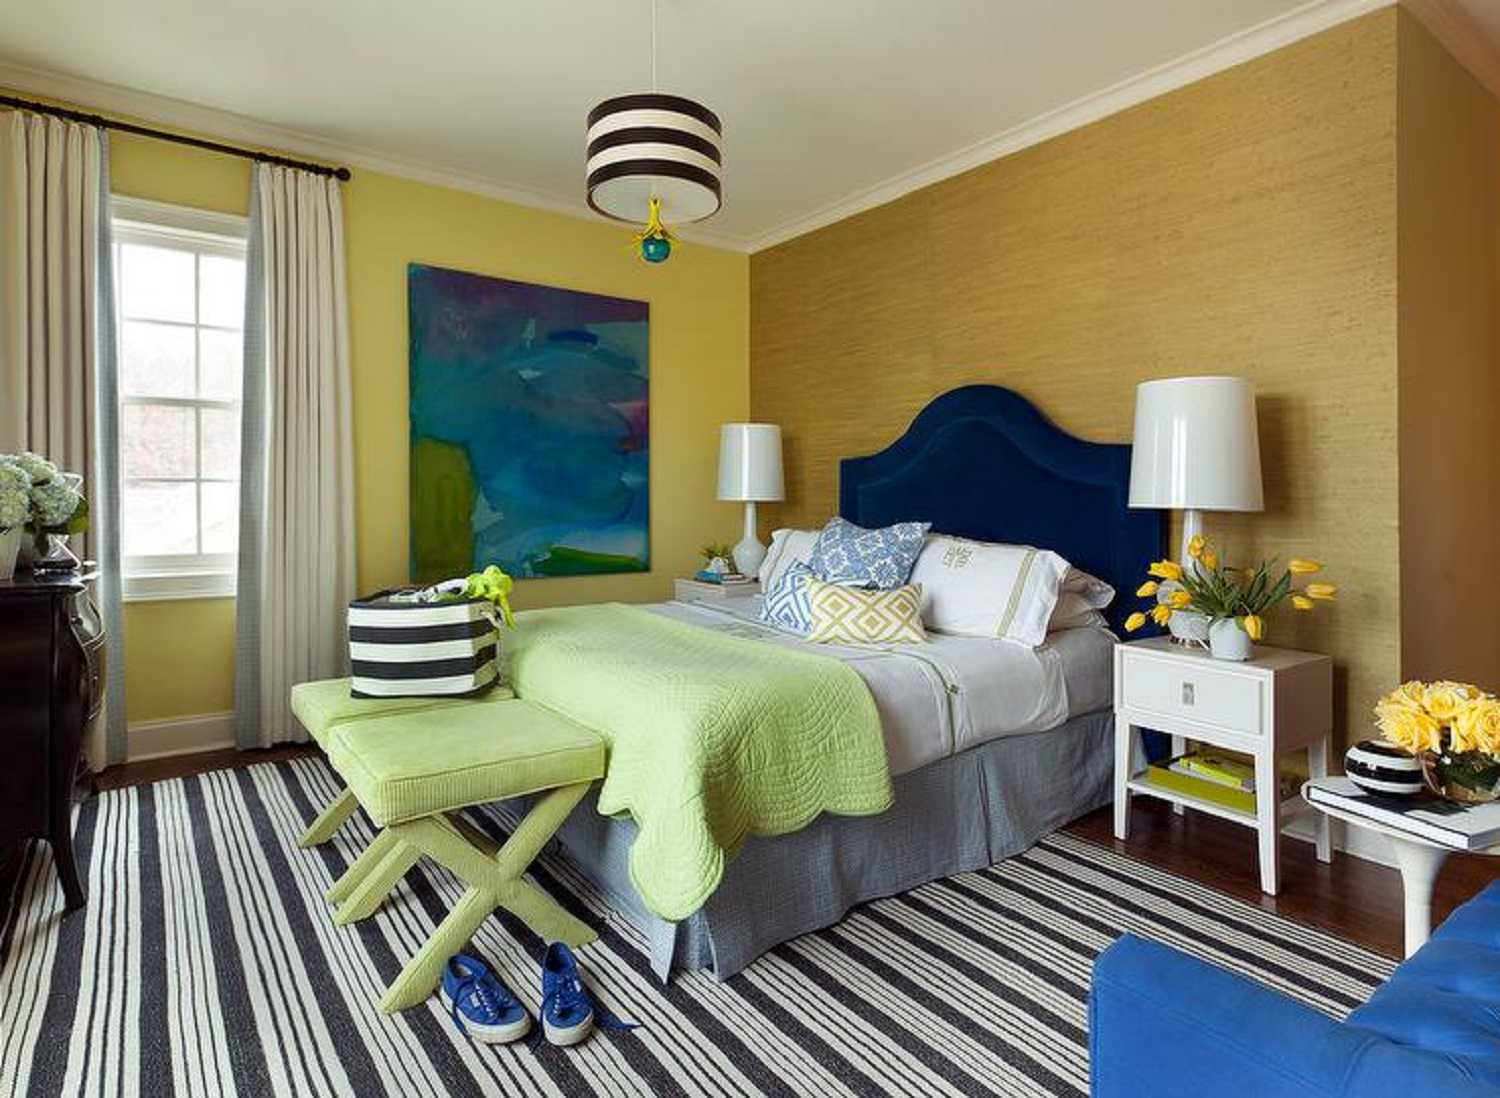 new bedroom homes perfect of stylid lighting ideas image design